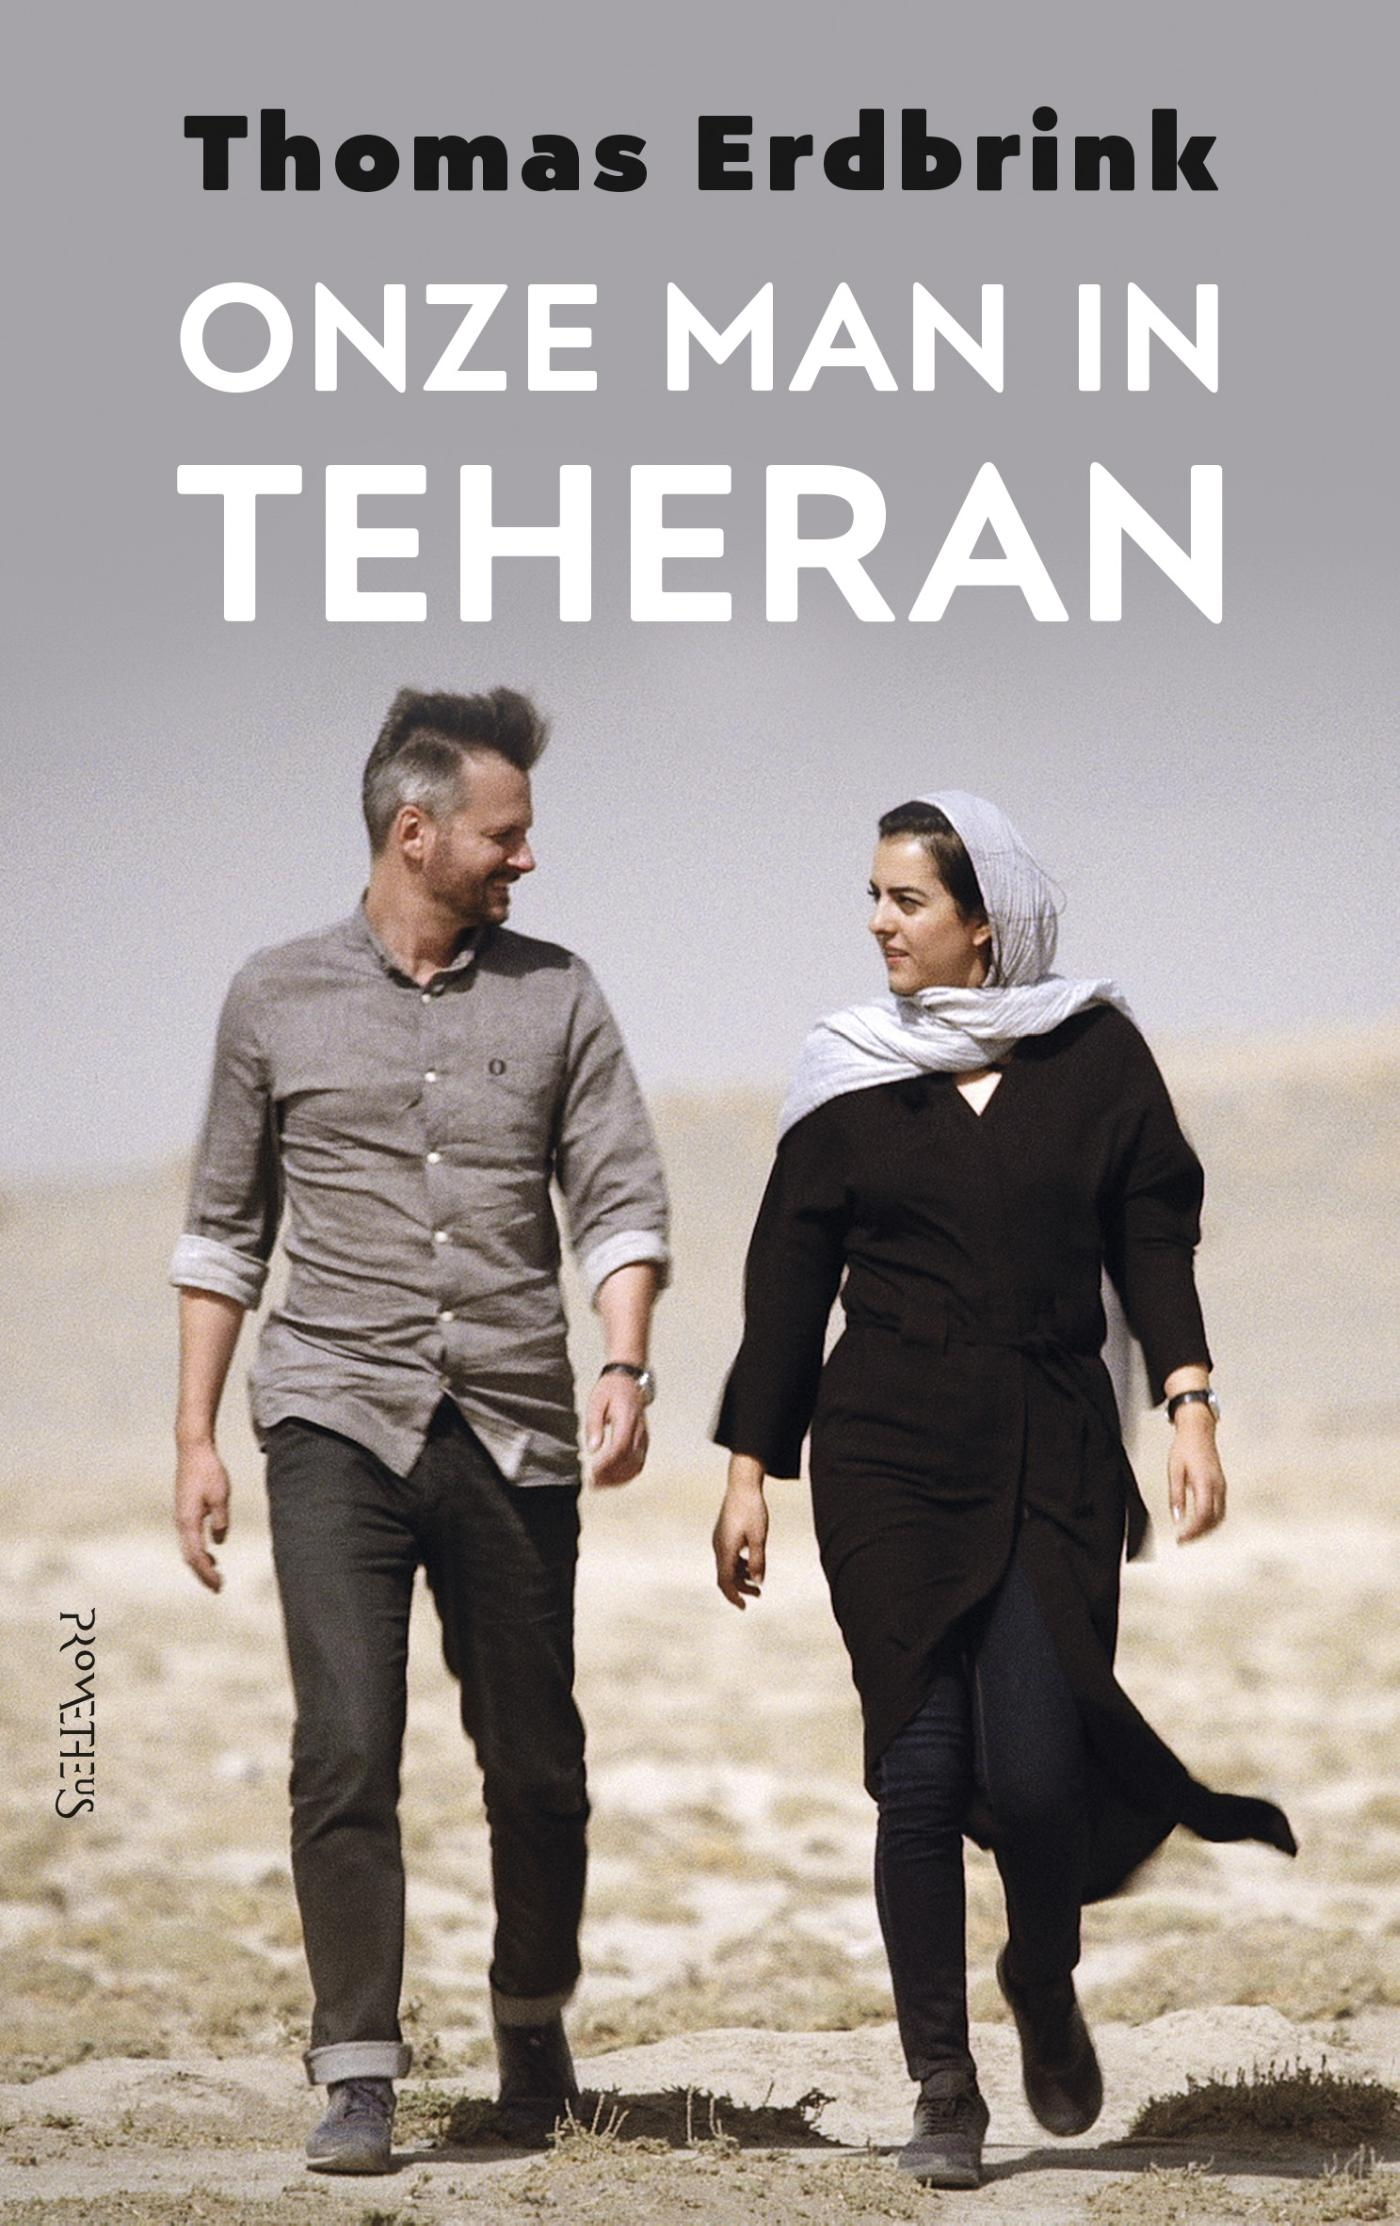 Onze man in Teheran – Thomas Erdbrink